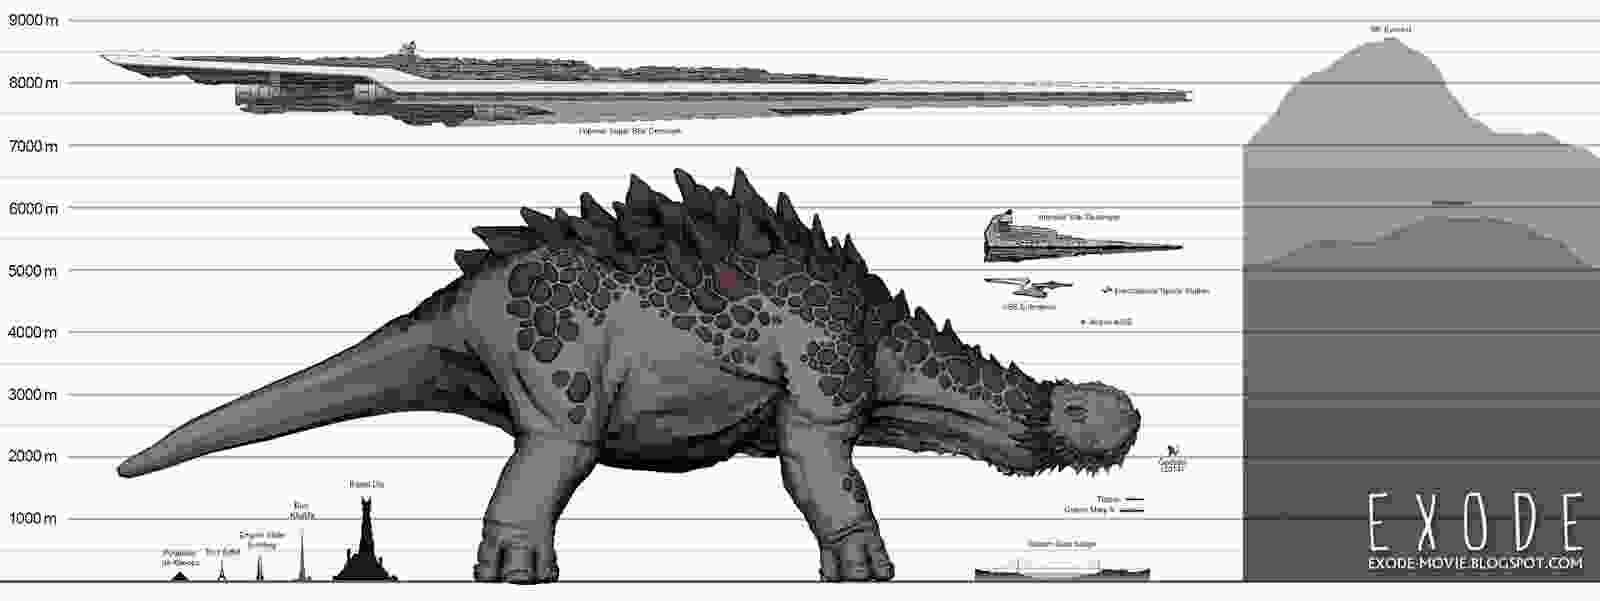 dino_scale-compressed